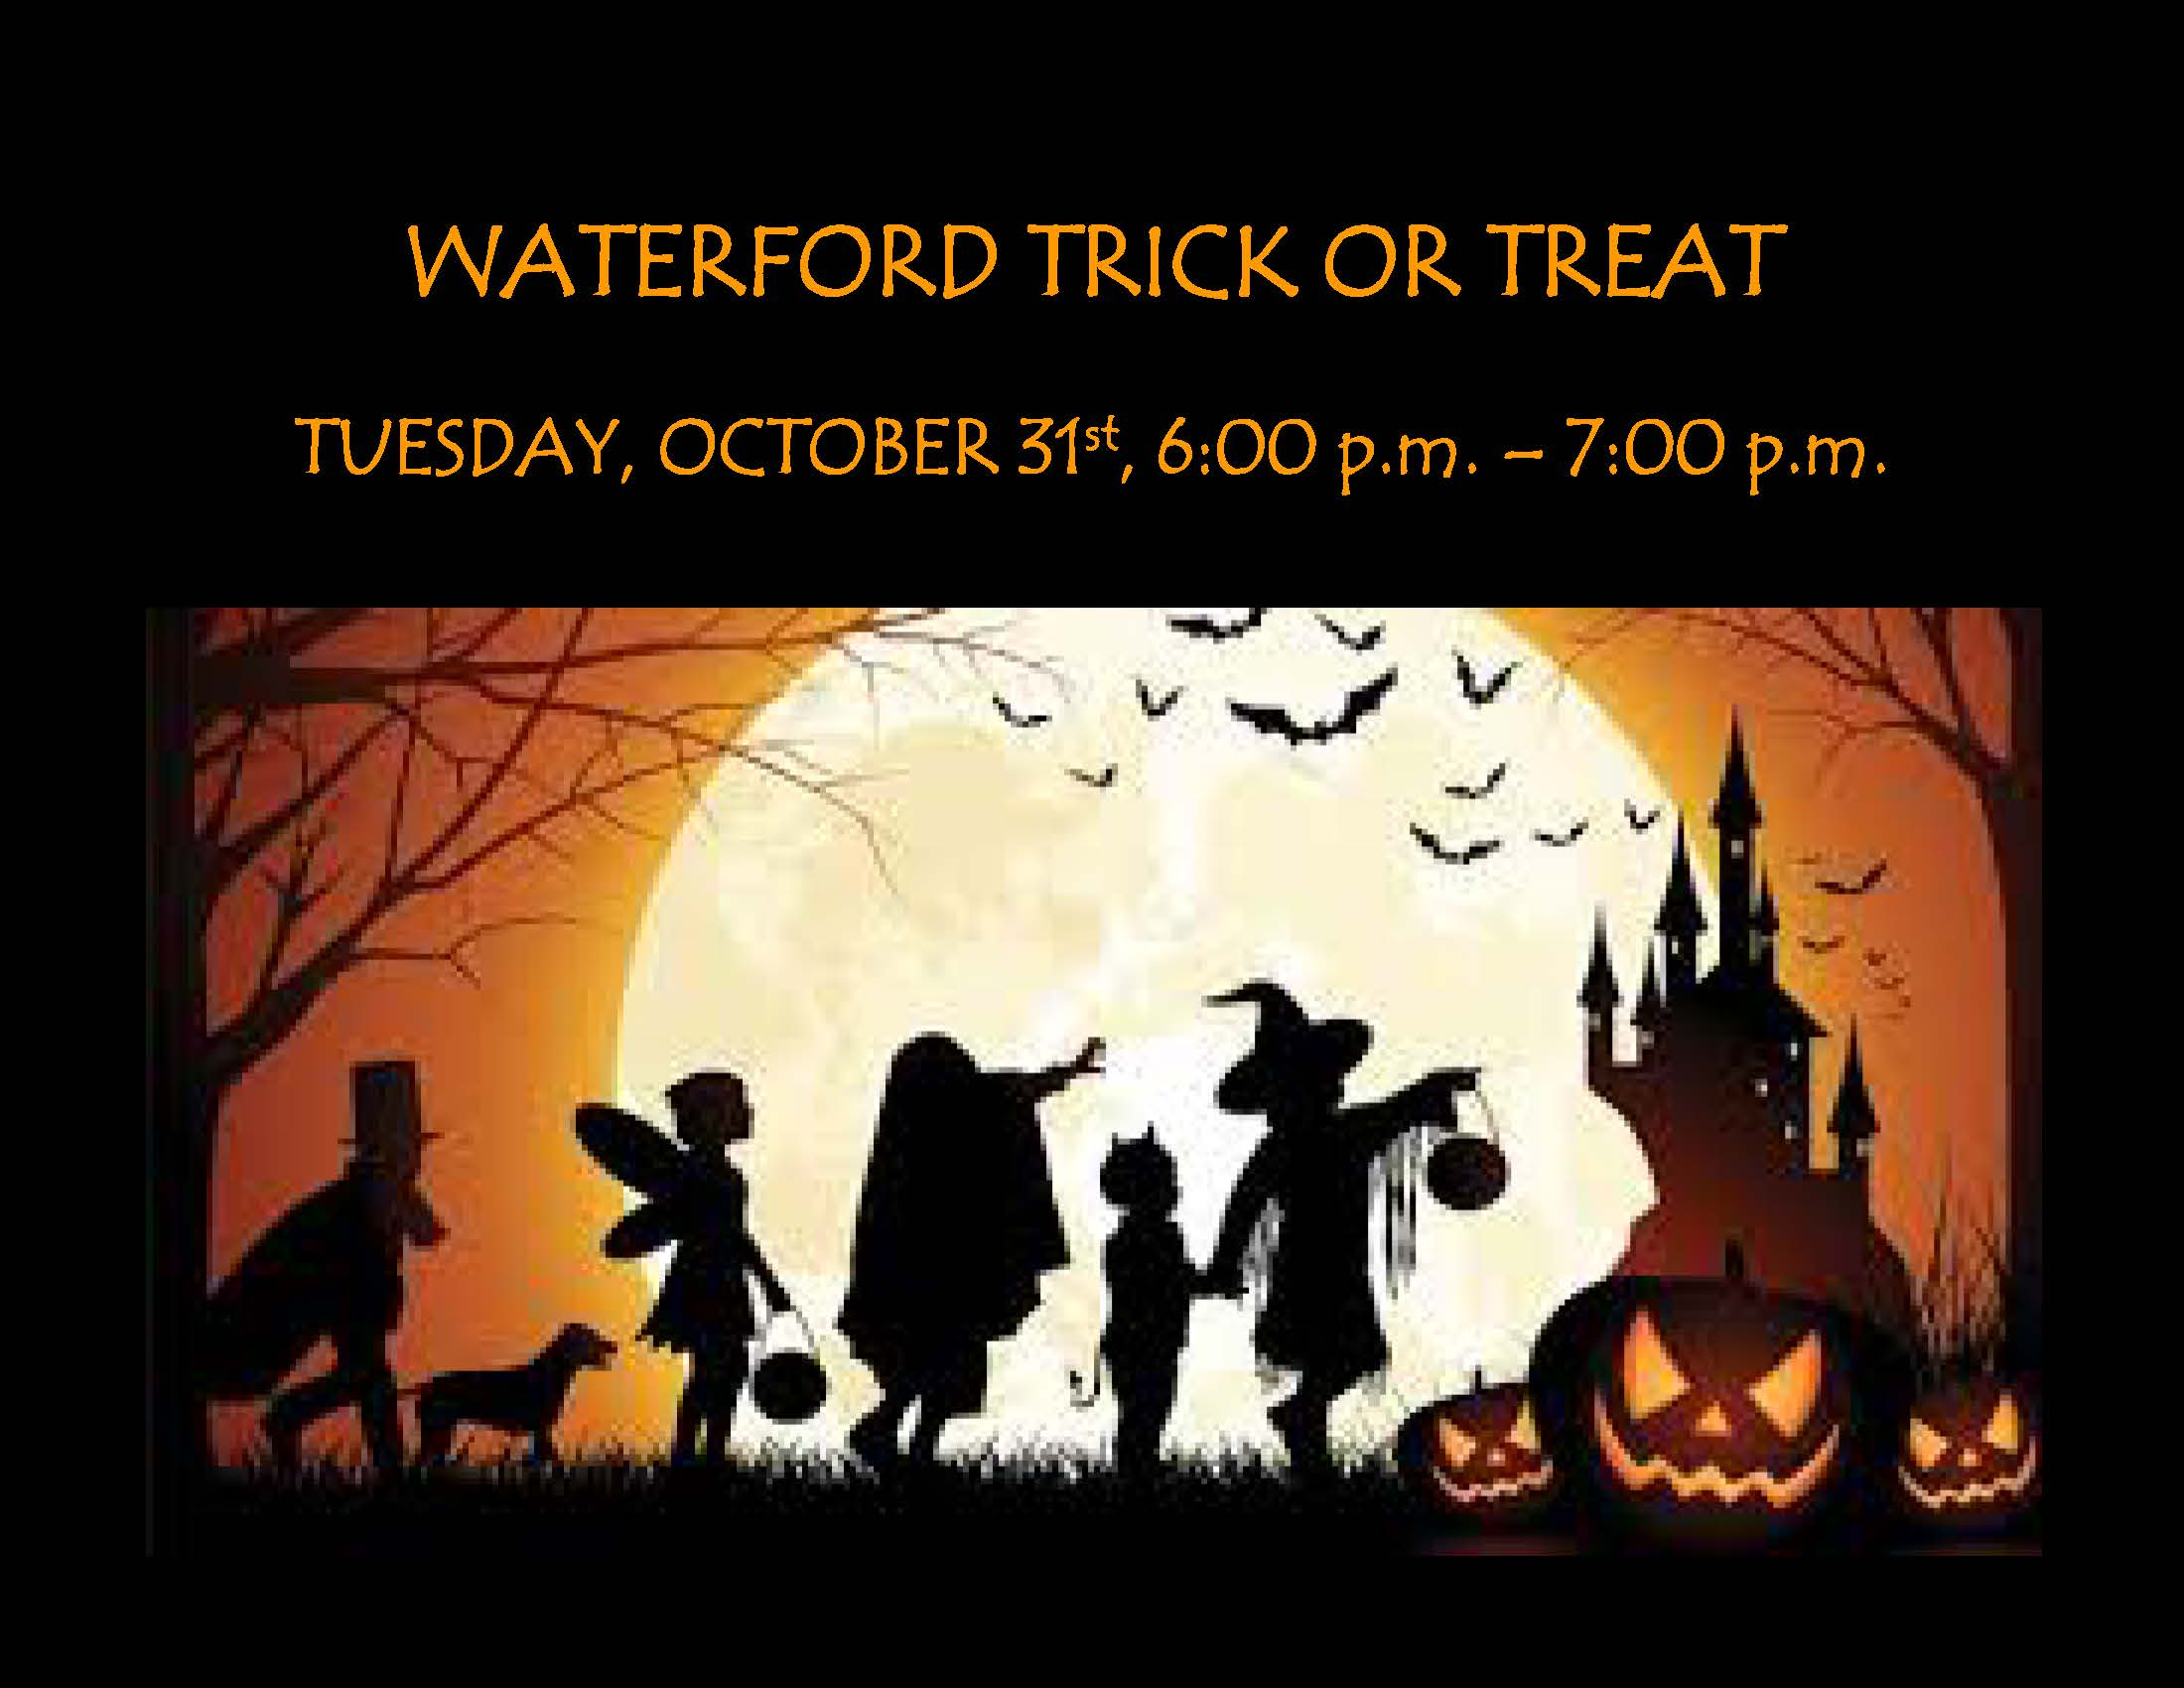 WATERFORD TRICK OR TREAT